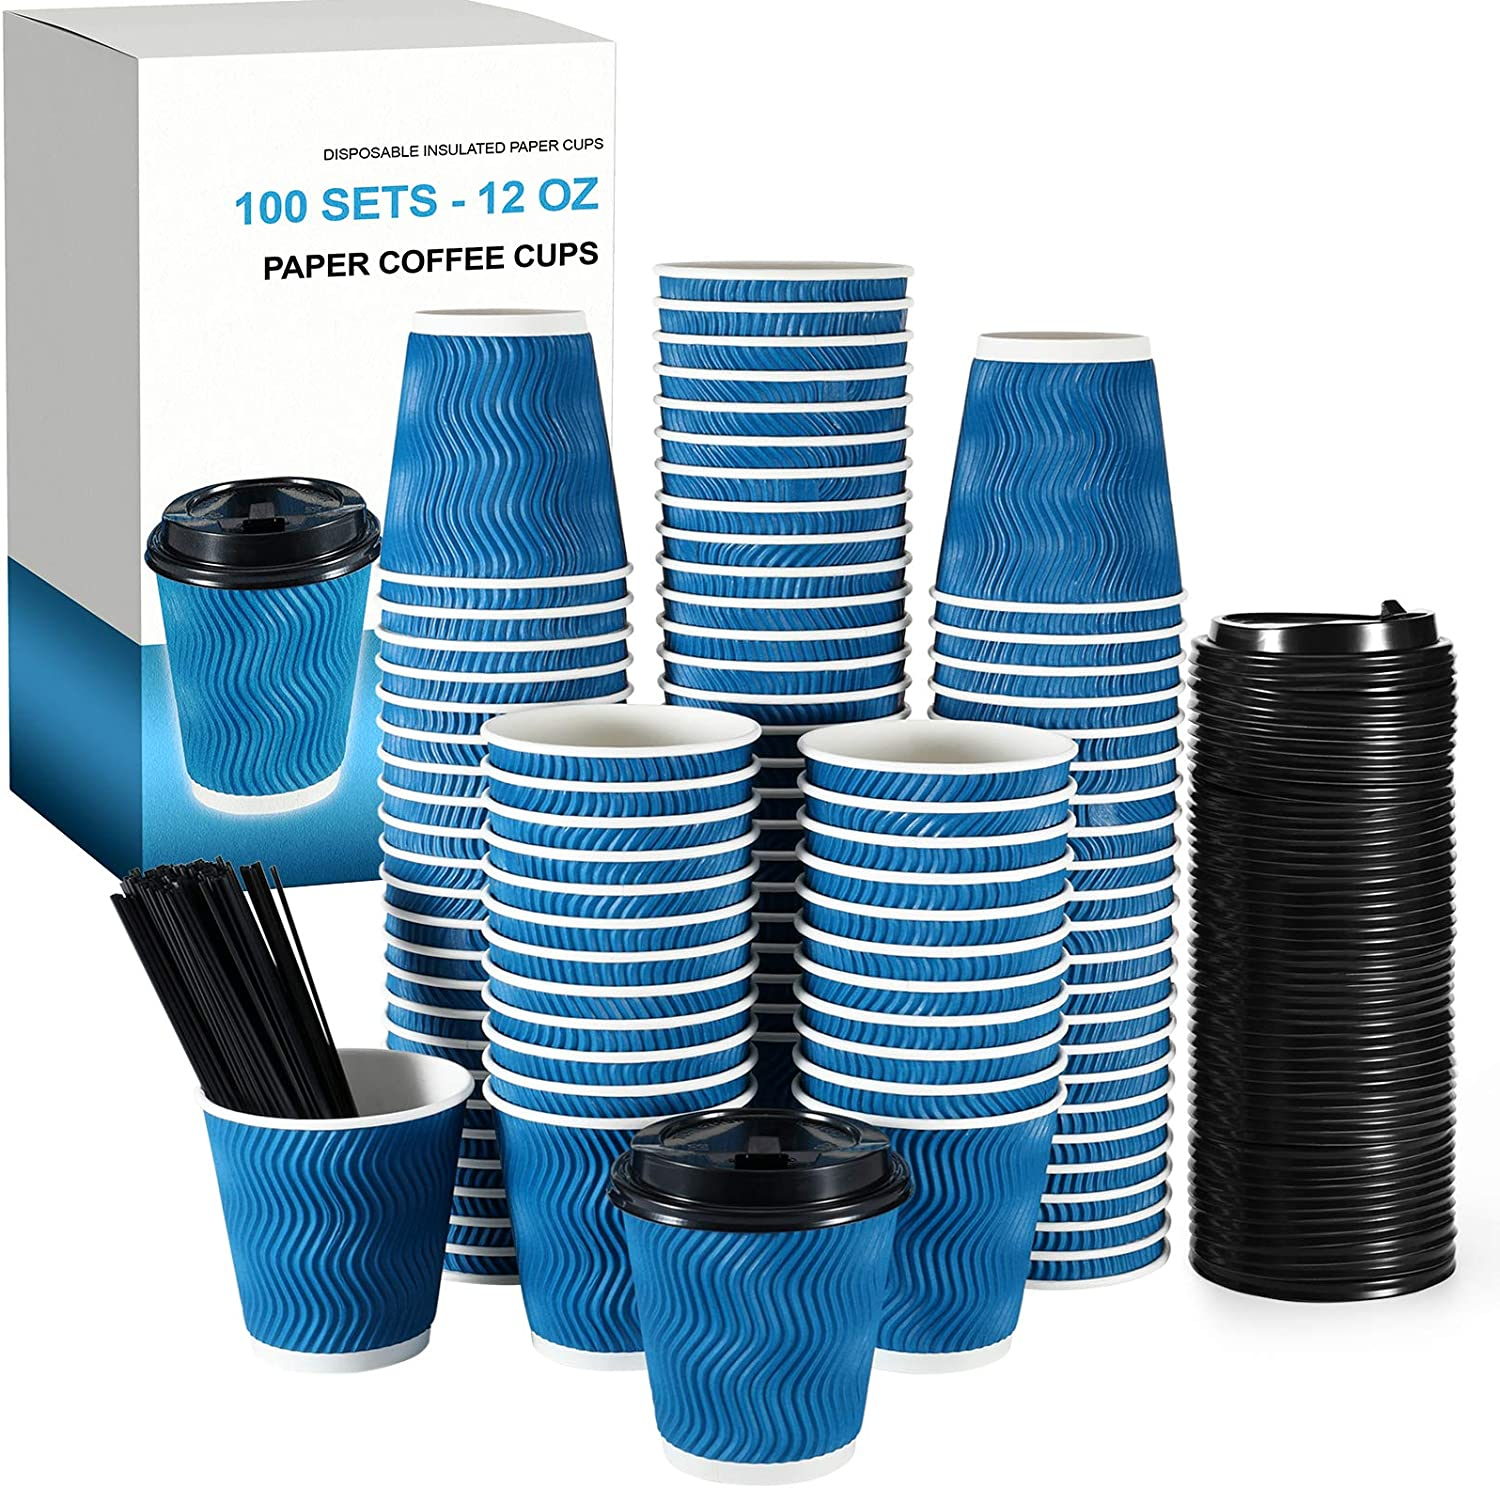 Millet by R-100 Sets 12 Oz Premium Disposable Coffee Cups with Lids & Stirring Straws-For Hot Cold Beverages Good For Home, Office, Party- Insulated To Go Paper Coffee Cups with Fitted Lids